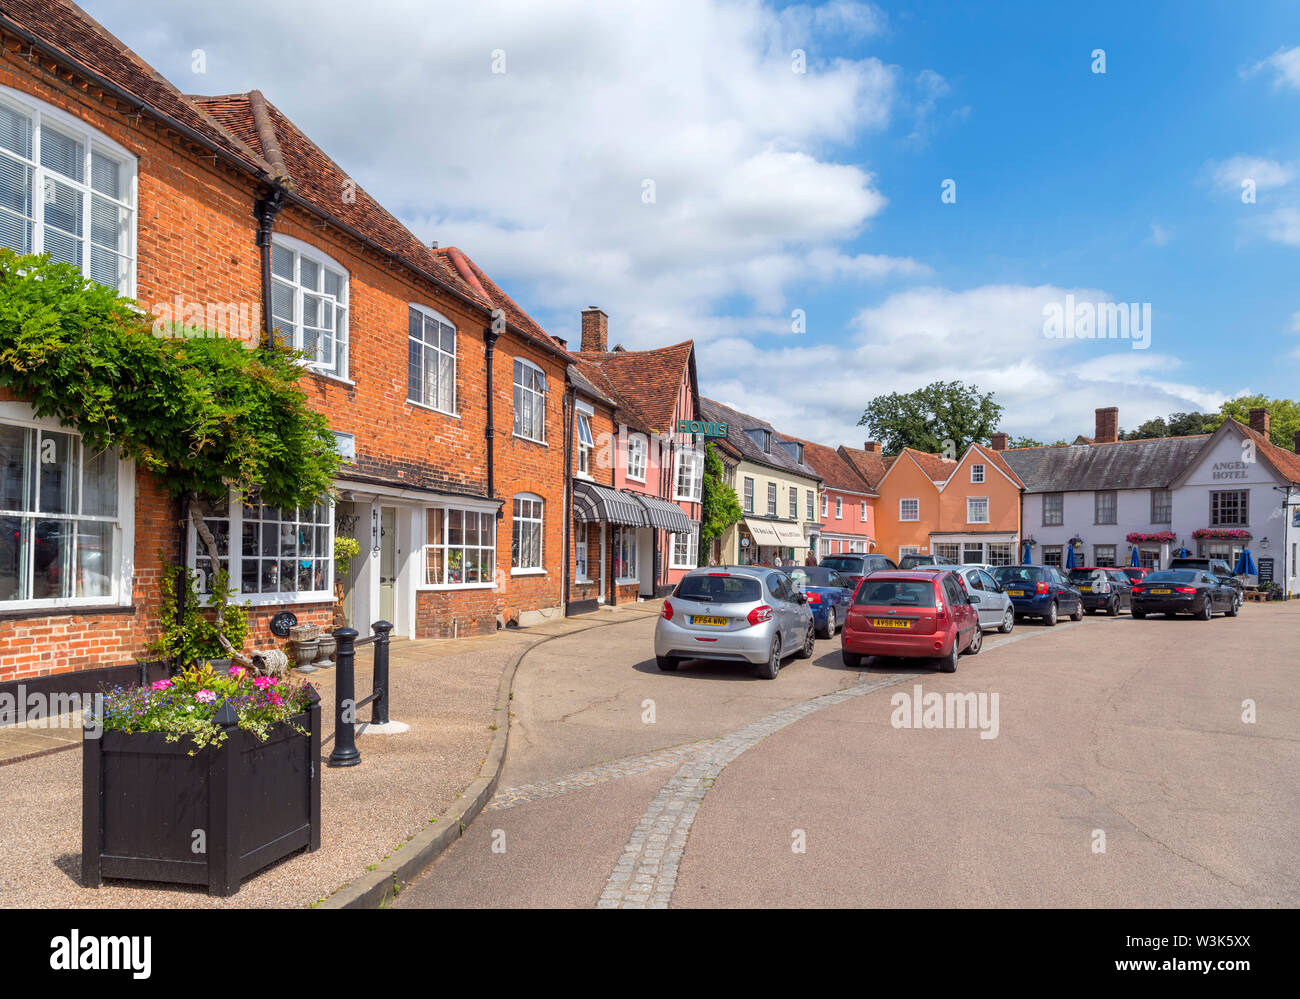 The Market Place, Lavenham, Suffolk, England, UK - Stock Image